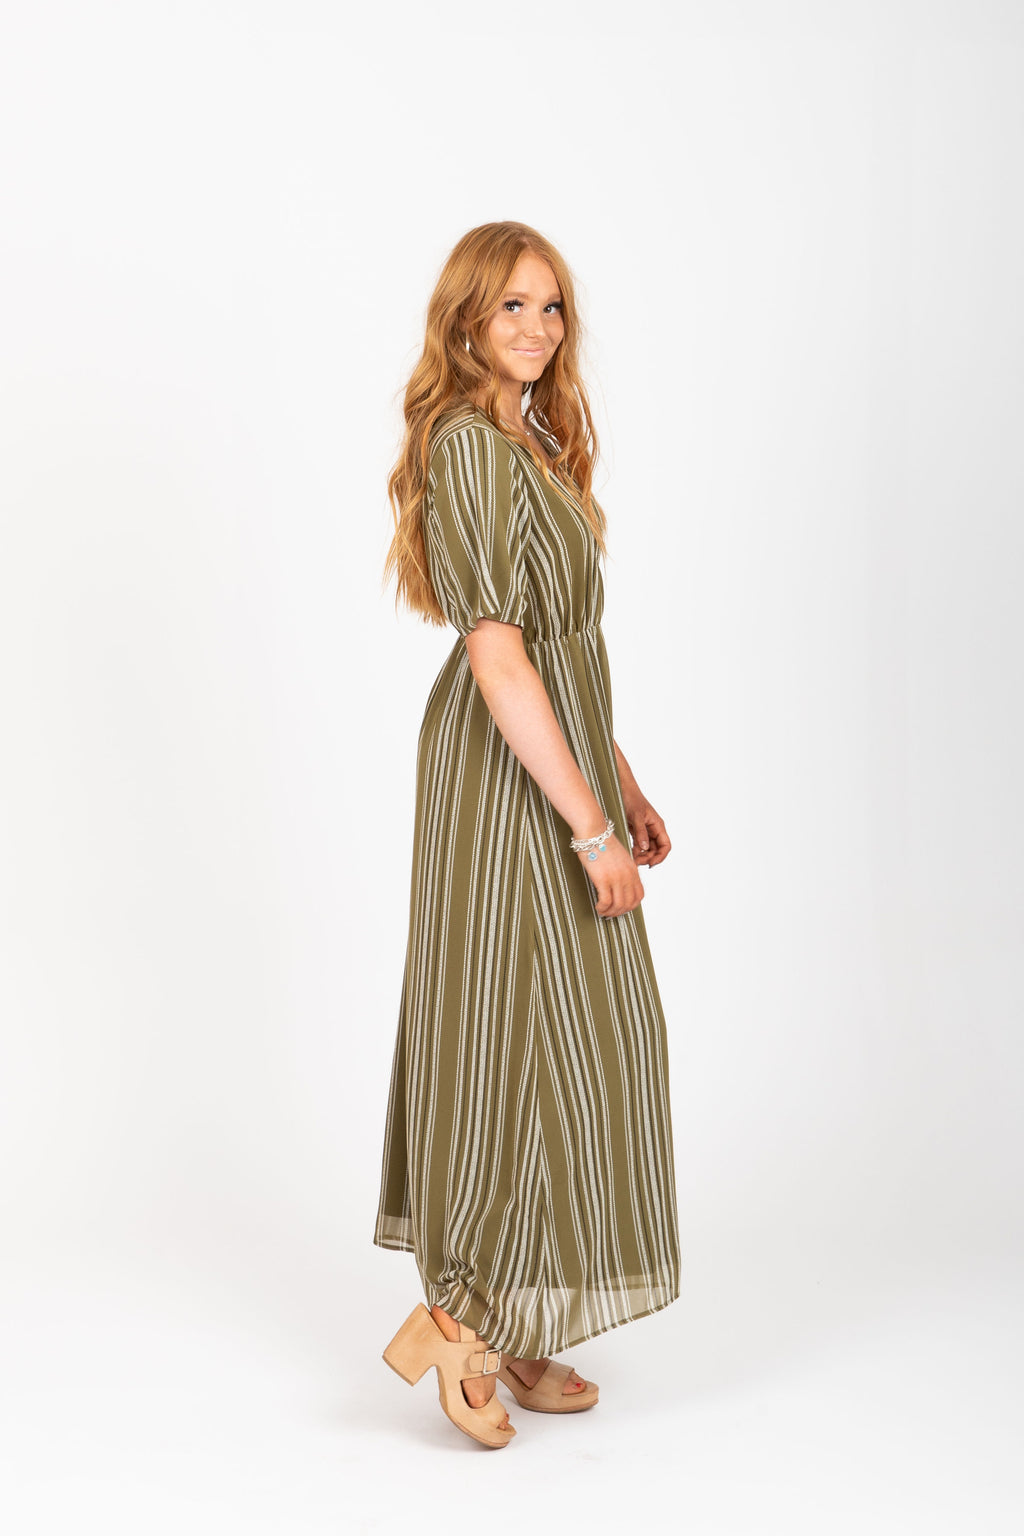 The Larsen Striped Maxi Dress in Olive